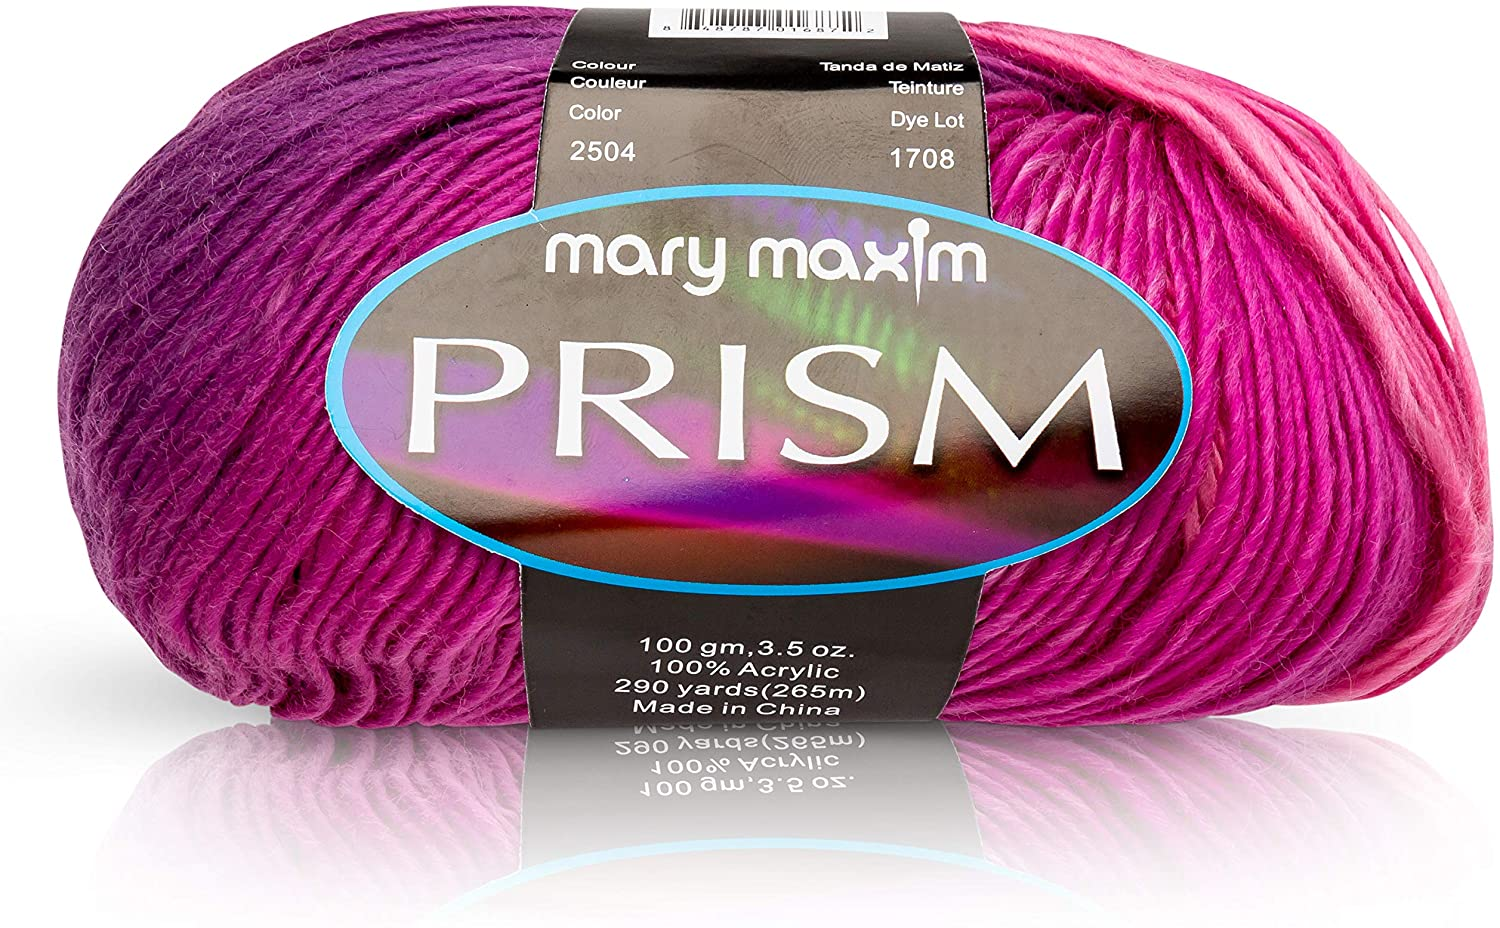 Mary Maxim Prism Yarn - 3 Light Weight Yarn for Knitting & Crochet Projects - 100% Acrylic - DK Worsted - Roving Yarn - 290 Yards (Wild Orchids)